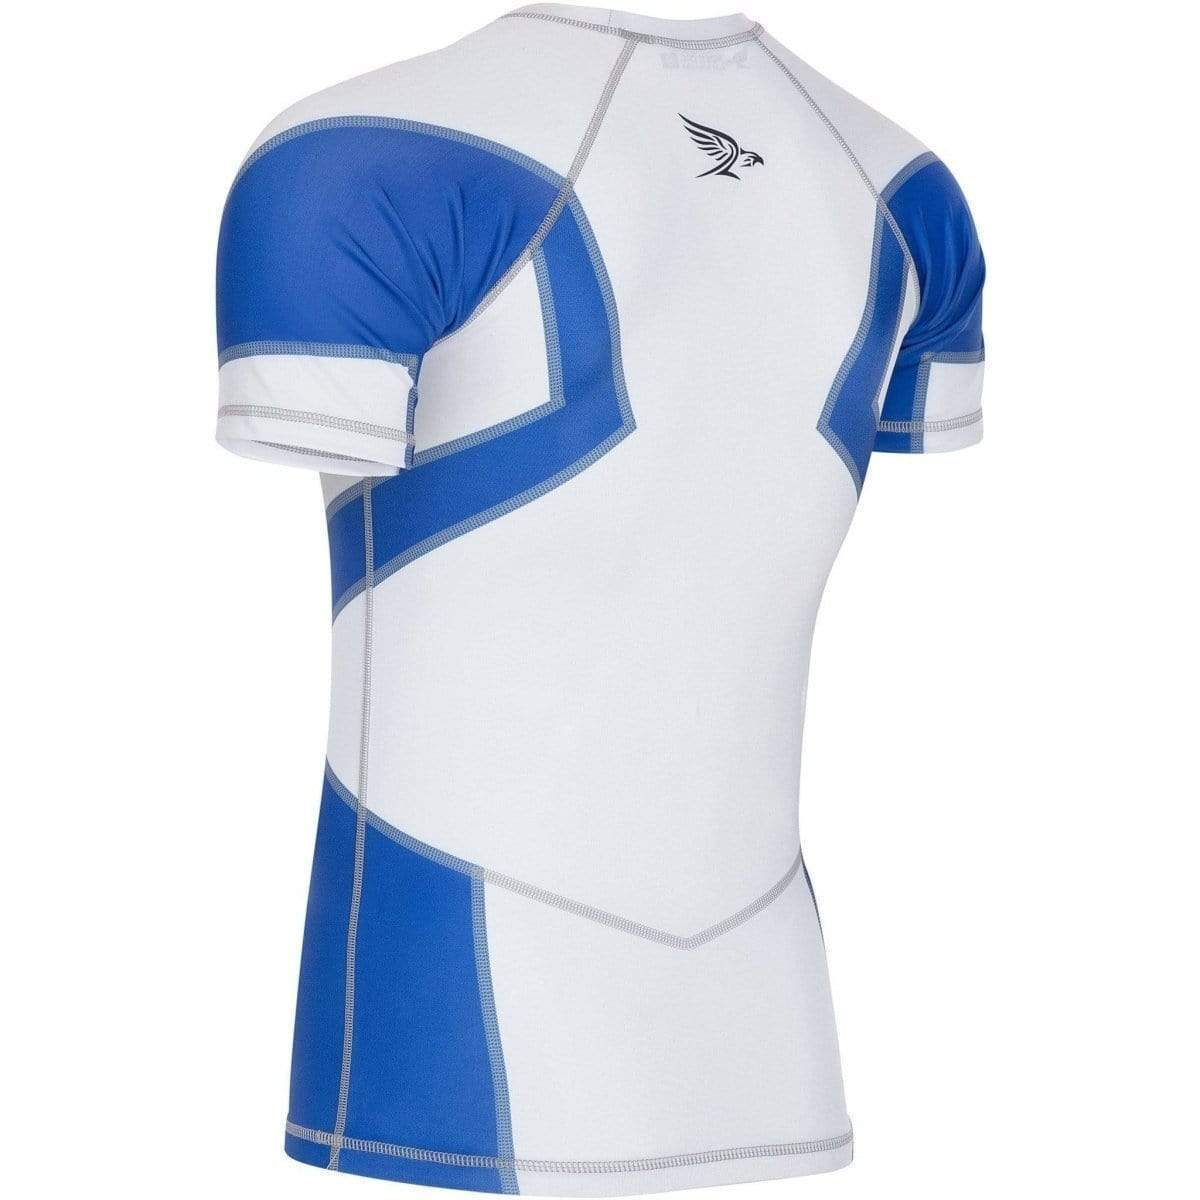 Habrok Rash Guard Transform 2.0 | Ranked Rash Guard Men | Half Sleeve | Men